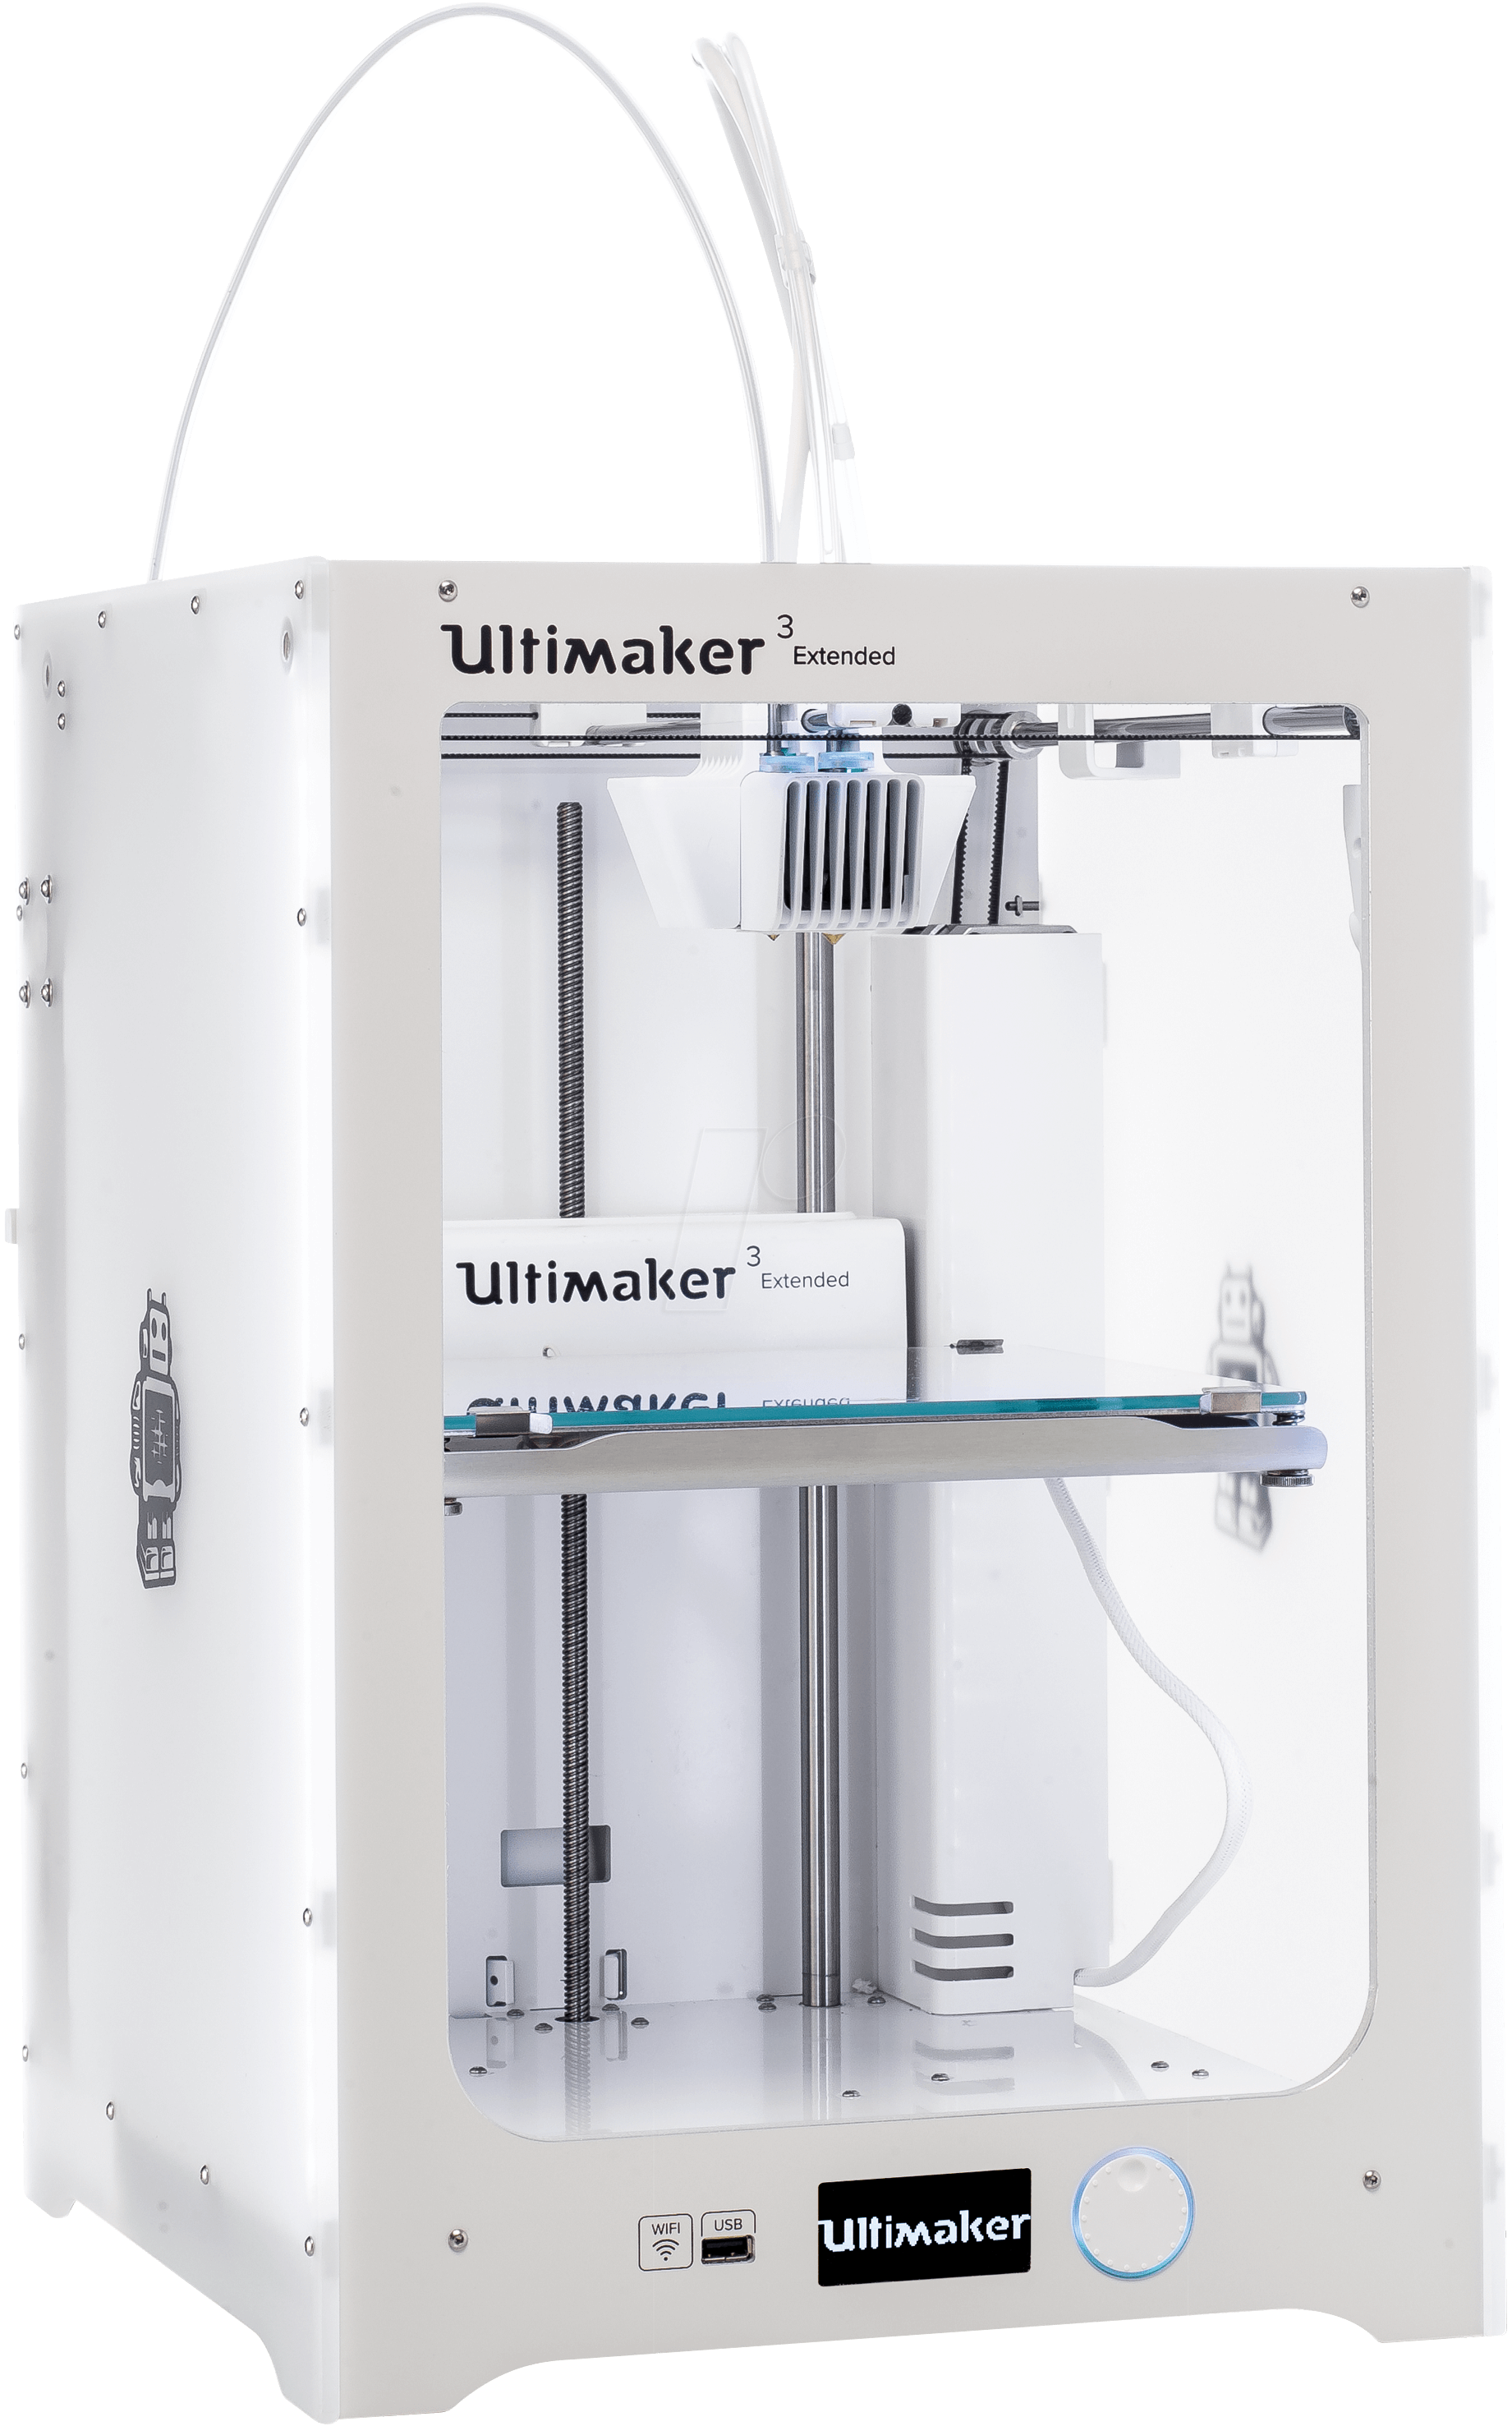 ultimaker 3 ext 3d drucker ultimaker 3 extended bei reichelt elektronik. Black Bedroom Furniture Sets. Home Design Ideas